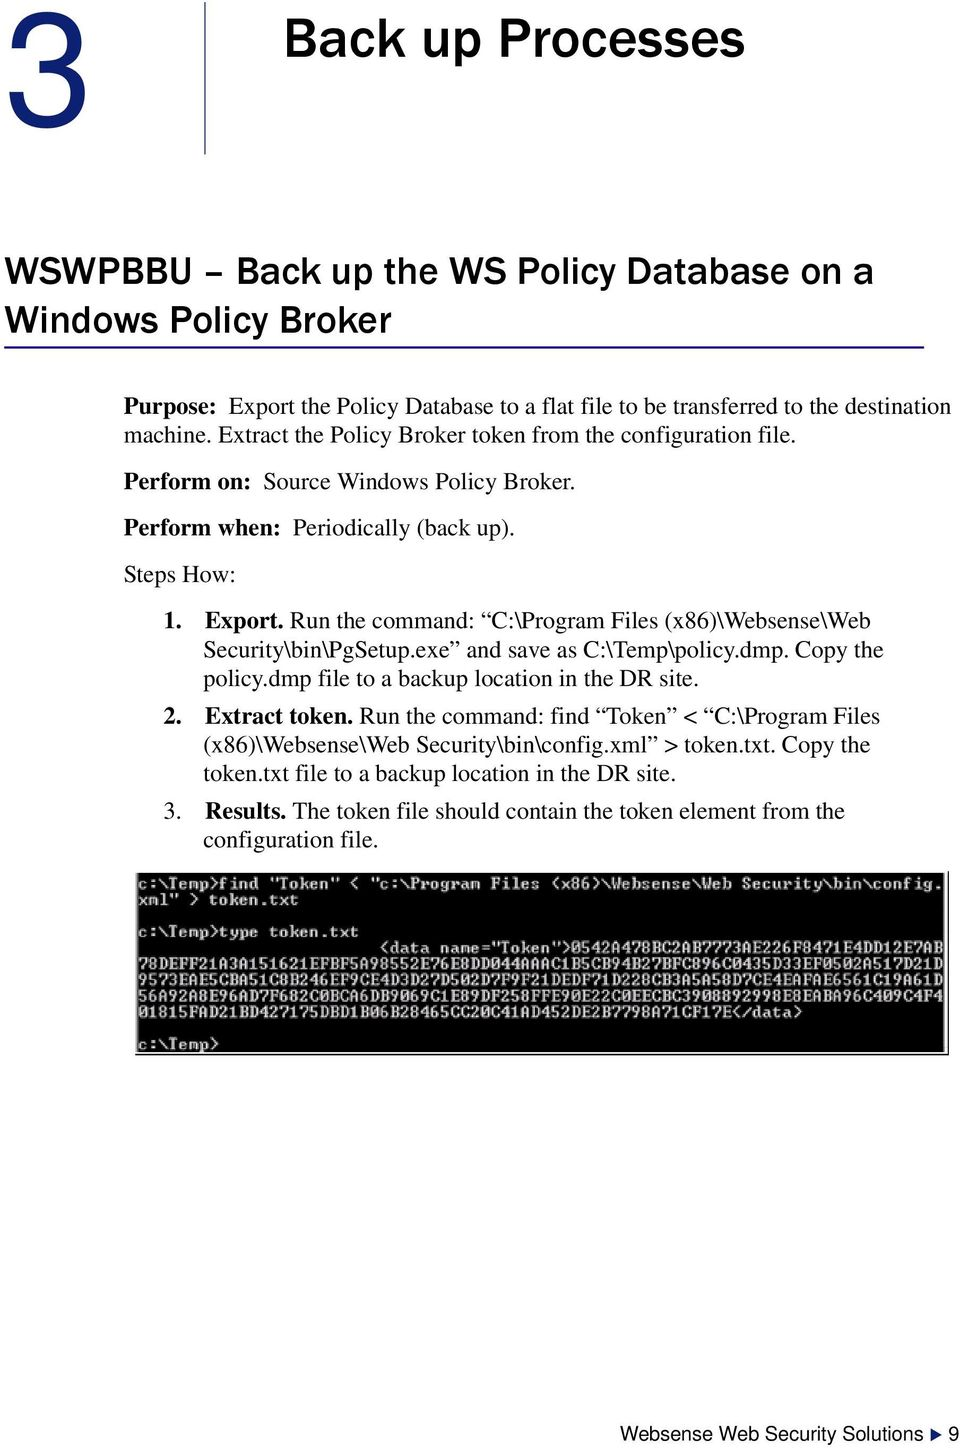 Run the command: C:\Program Files (x86)\websense\web Security\bin\PgSetup.exe and save as C:\Temp\policy.dmp. Copy the policy.dmp file to a backup location in the DR site. 2. Extract token.